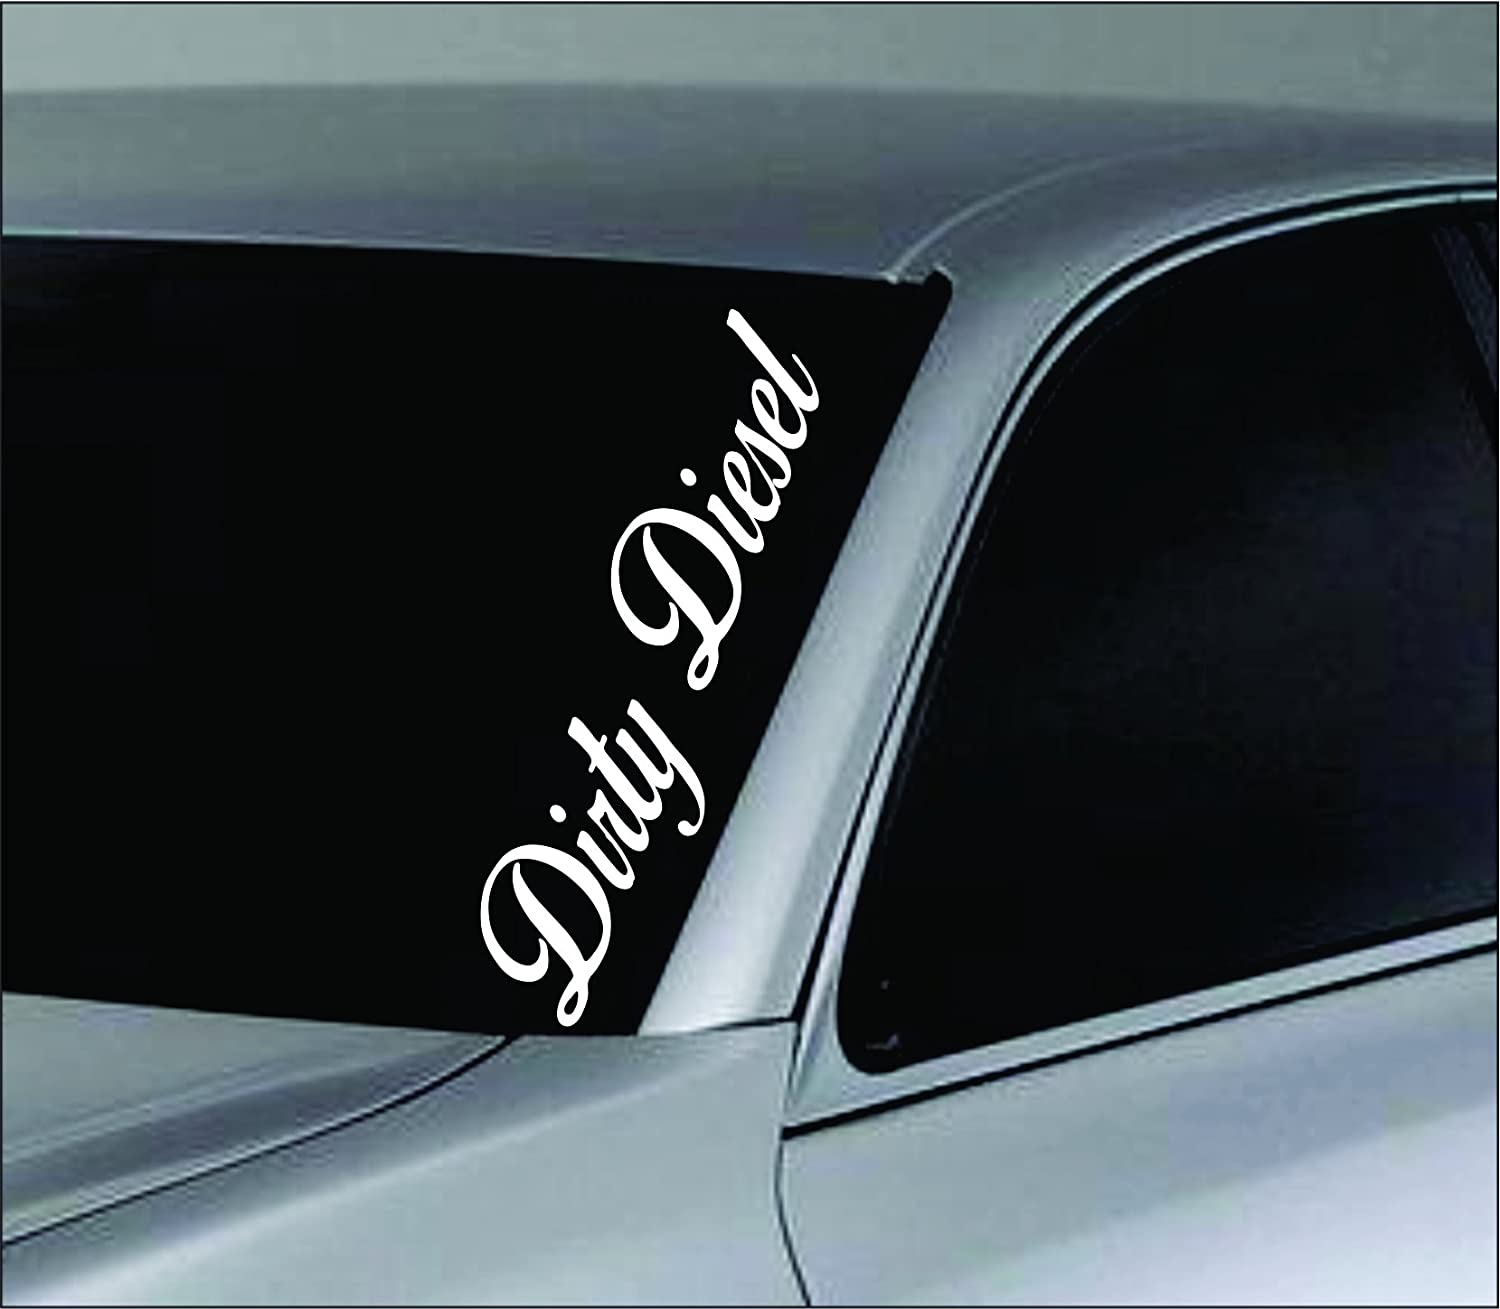 Amazoncom Dabbledown Decals Large Dirty Diesel Car Truck Window - Window decals amazon